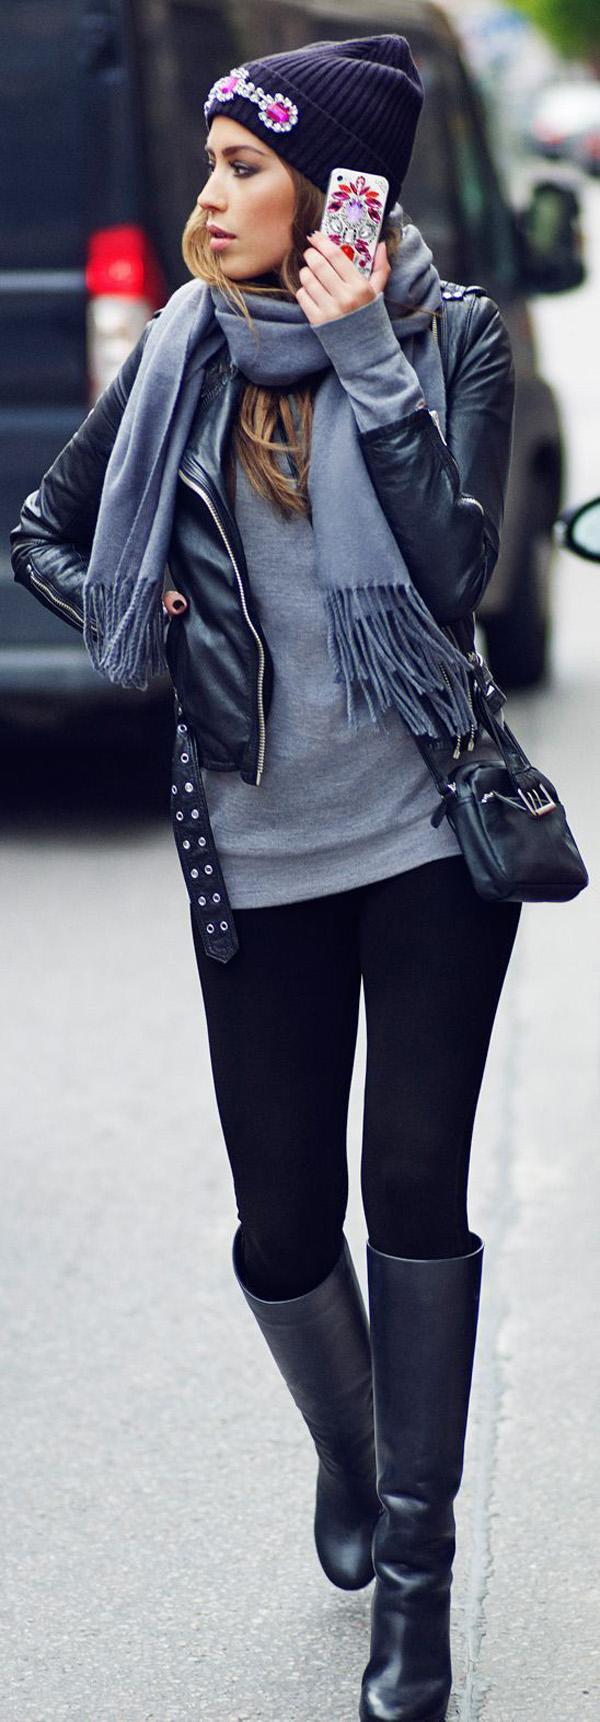 d6a95a579be winter street style - 60 Winter Outfit Ideas ...